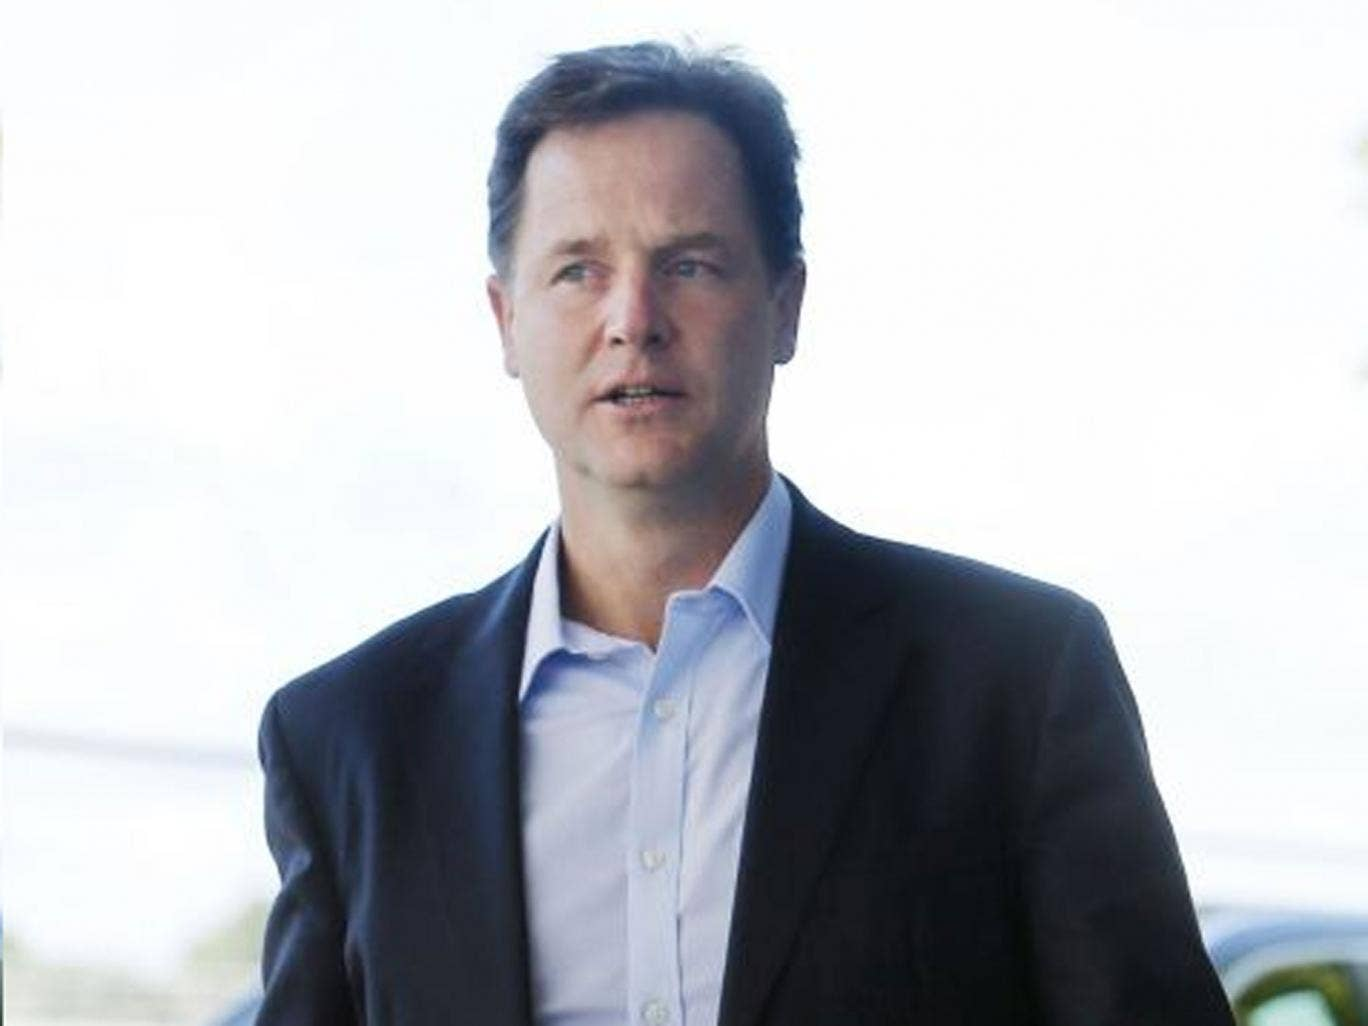 Nick Clegg says Lib Dems will push to raise personal tax-free allowance to £12,500 if re-elected